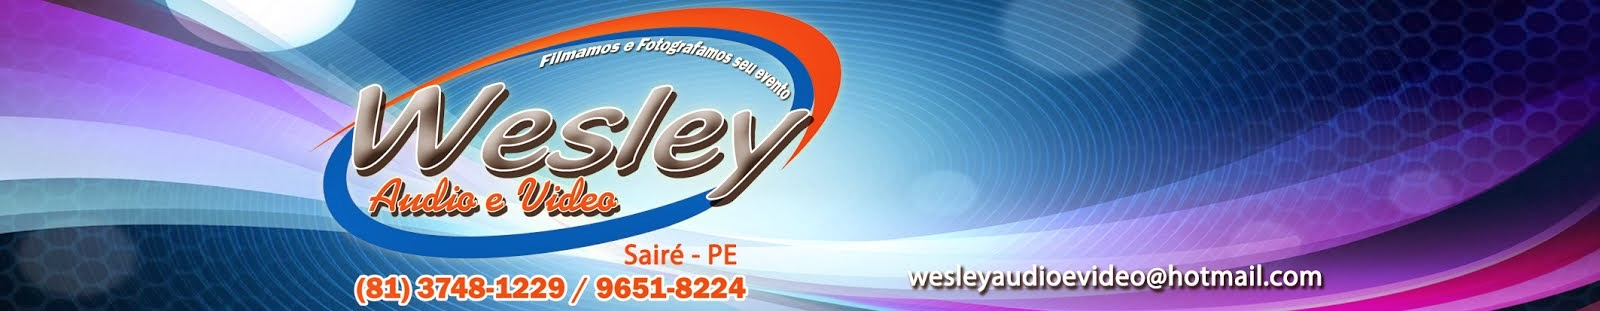 Wesley Audio e Video